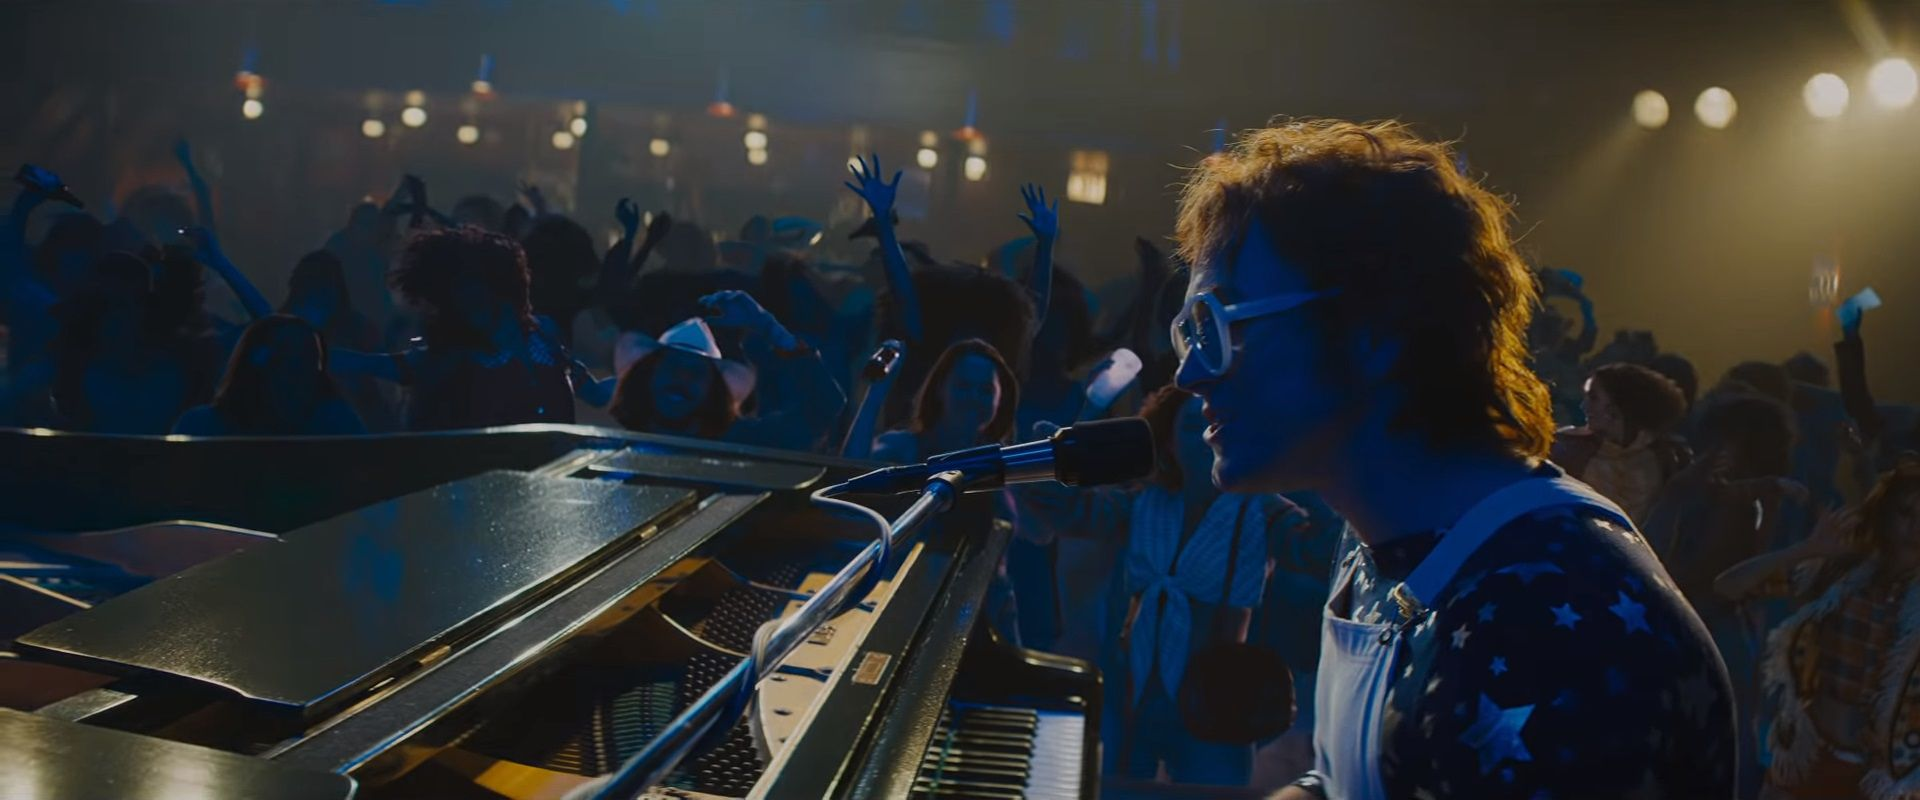 Rocketman (2019) scene singing an playing piano at concert